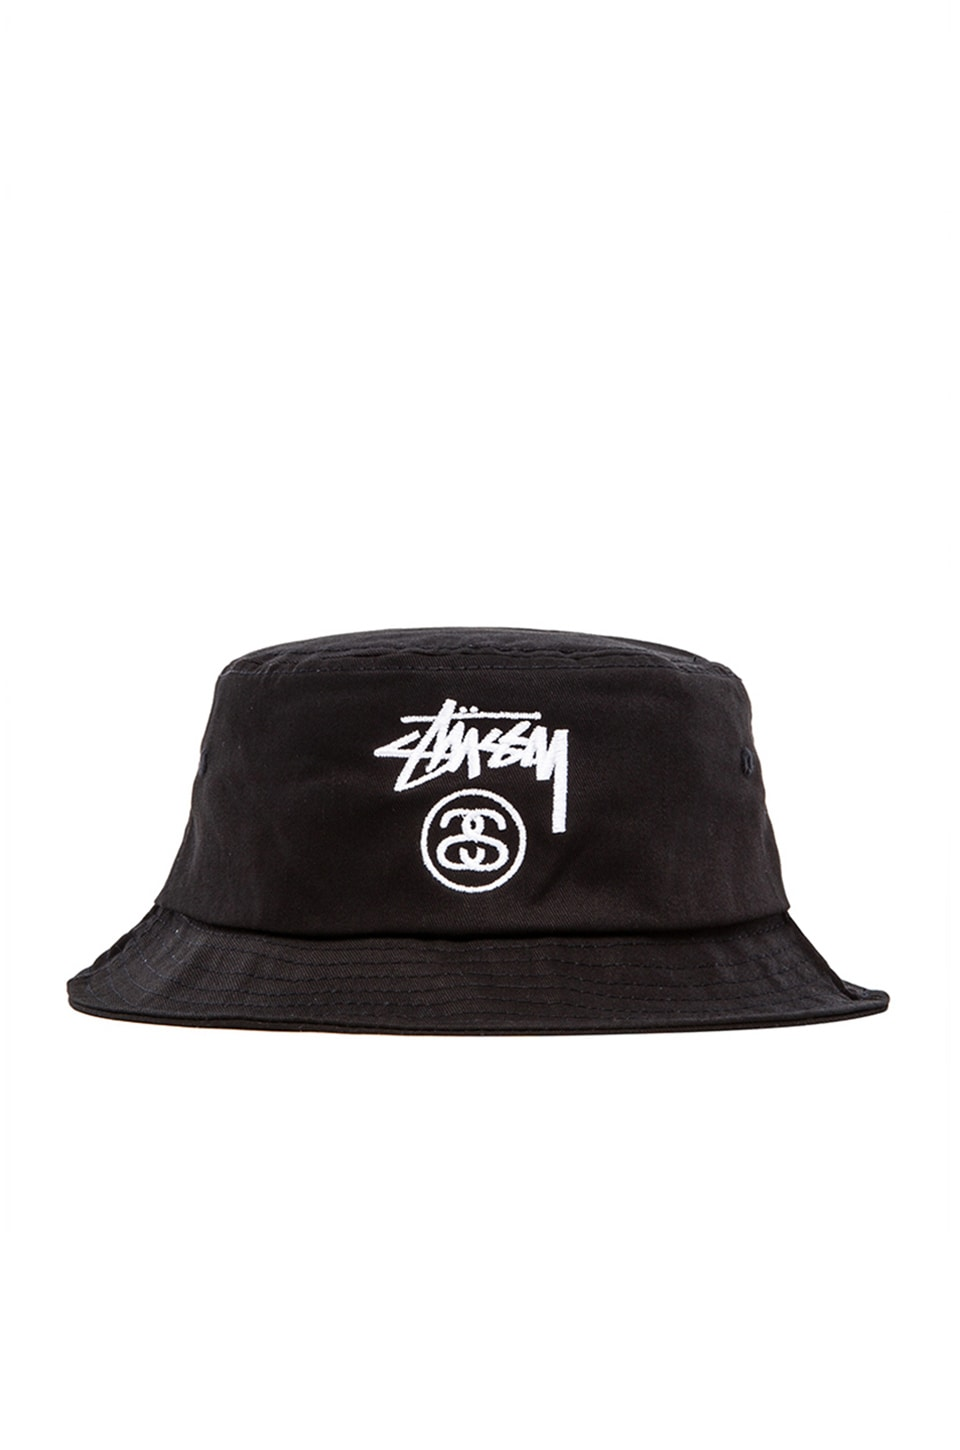 Stussy Stock Lock Bucket Hat in Black